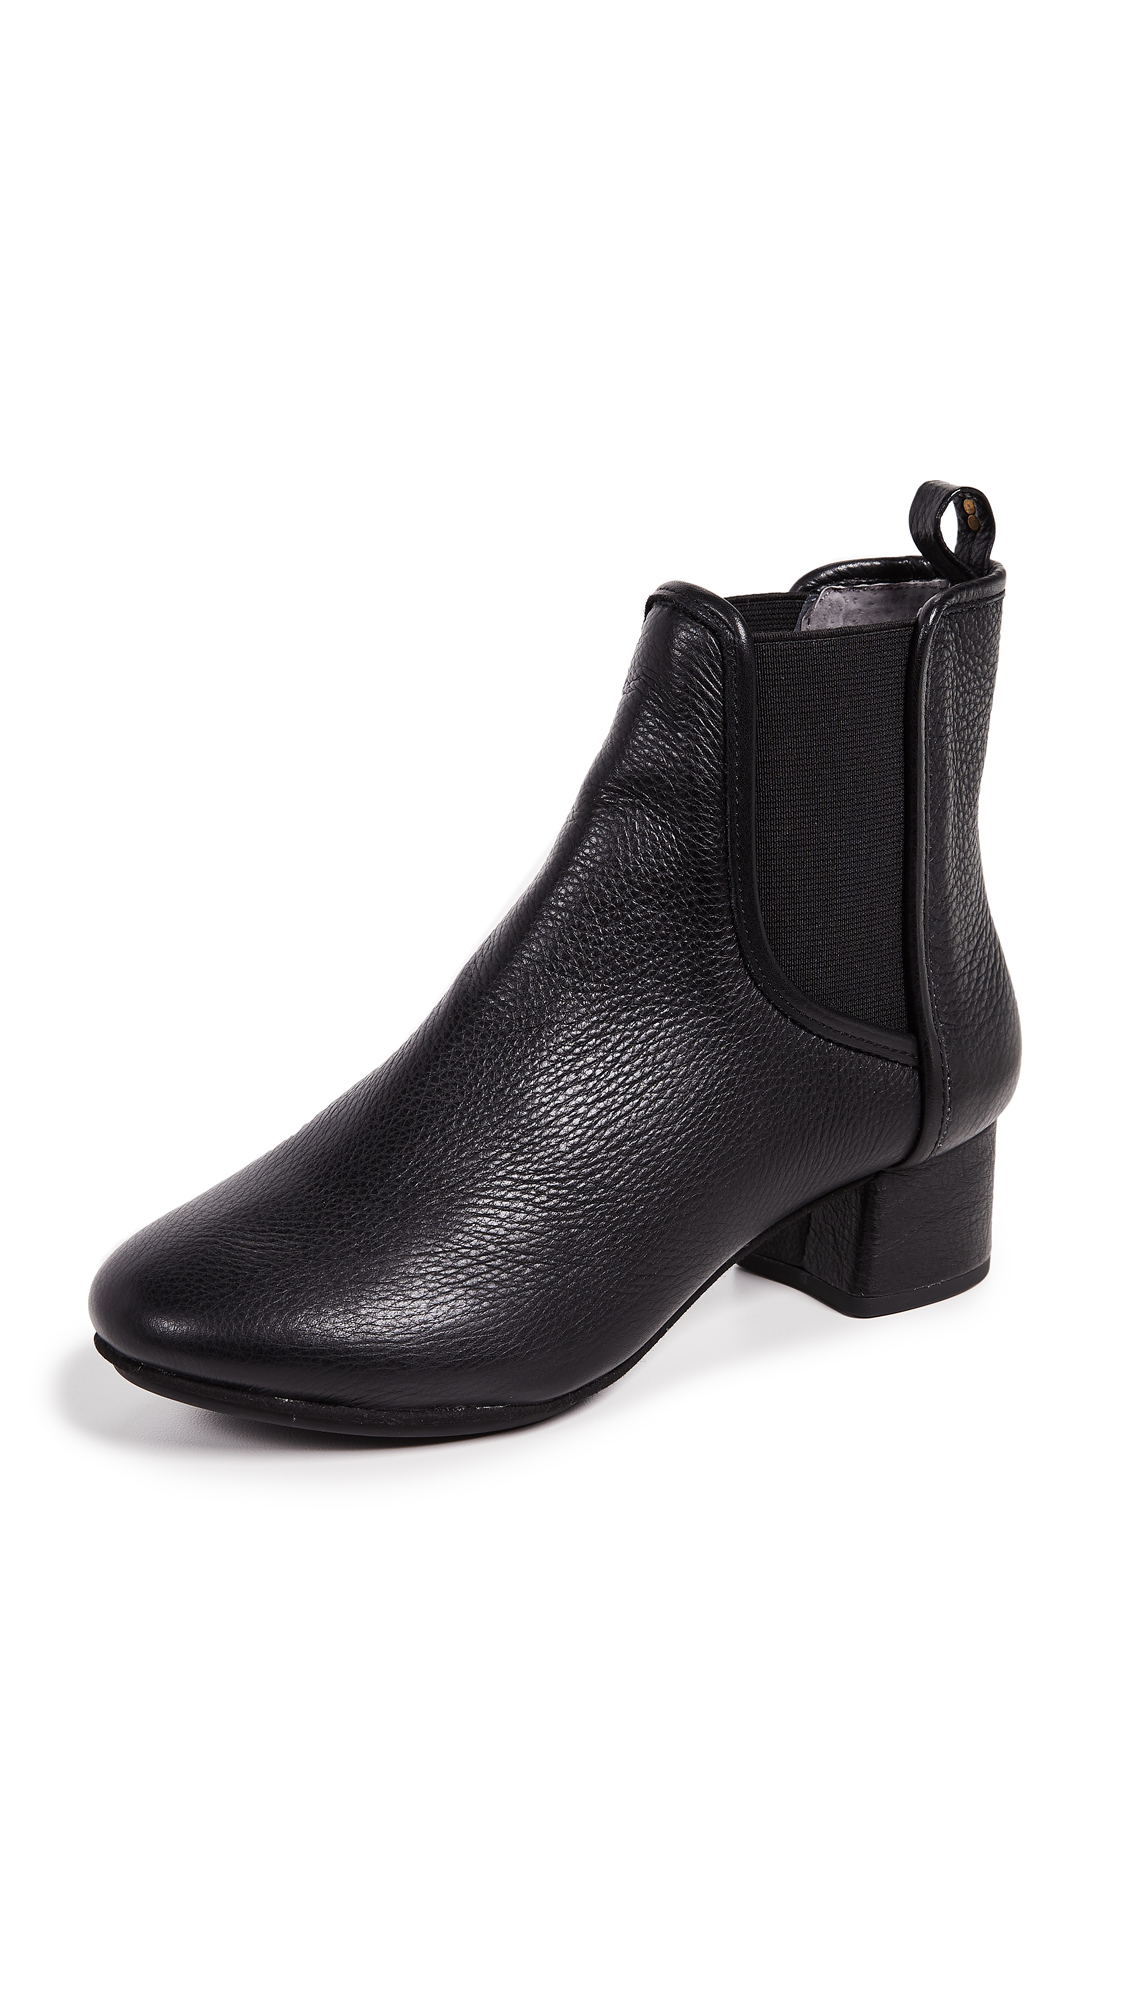 Yosi Samra Penelope Block Heel Booties In Black